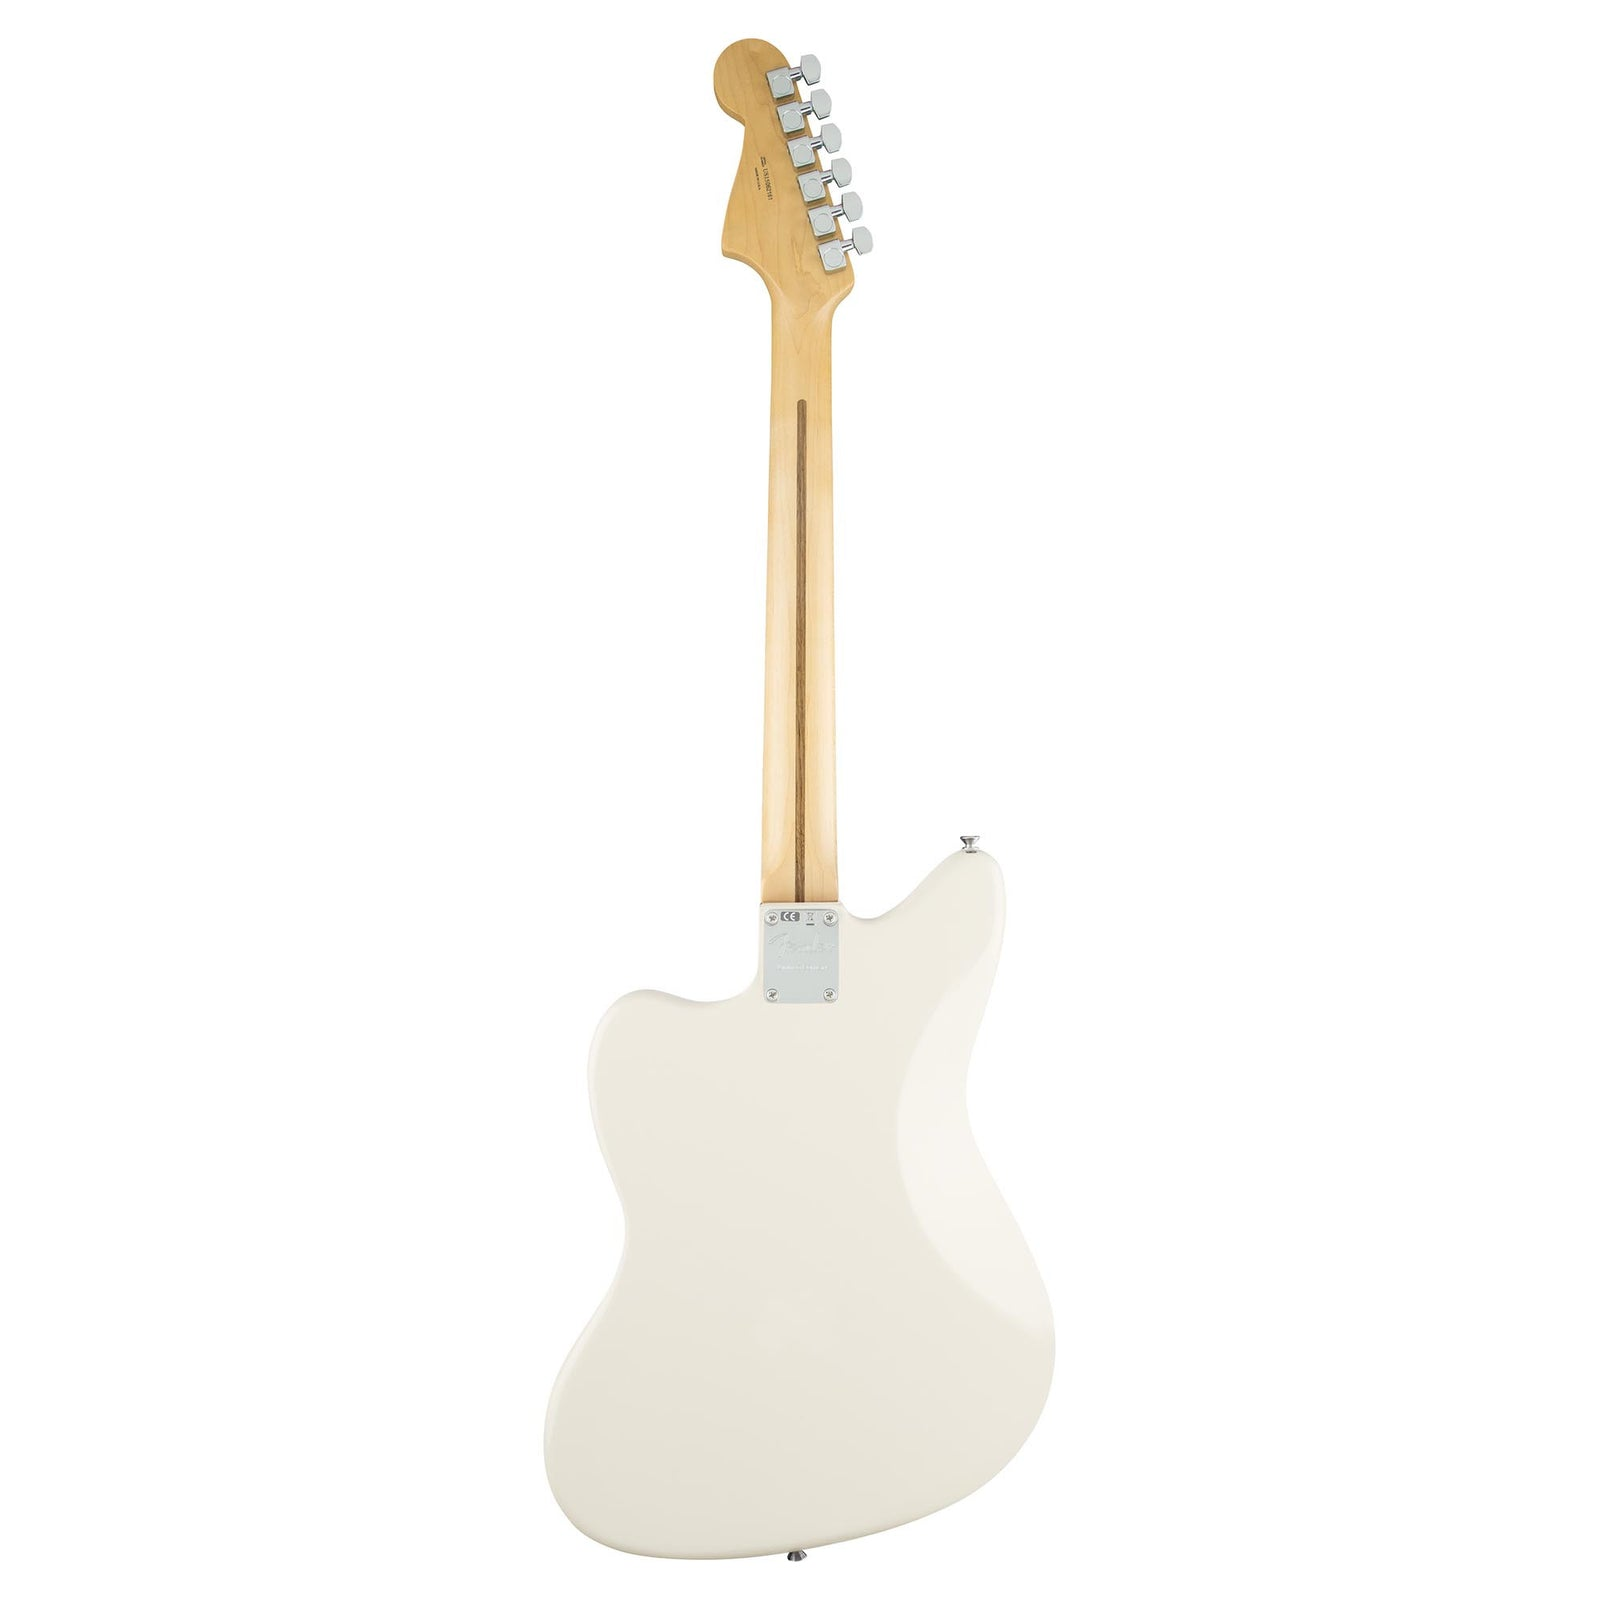 Fender Limited Edition Magnificent 7 American Special Jazzmaster - Olympic White